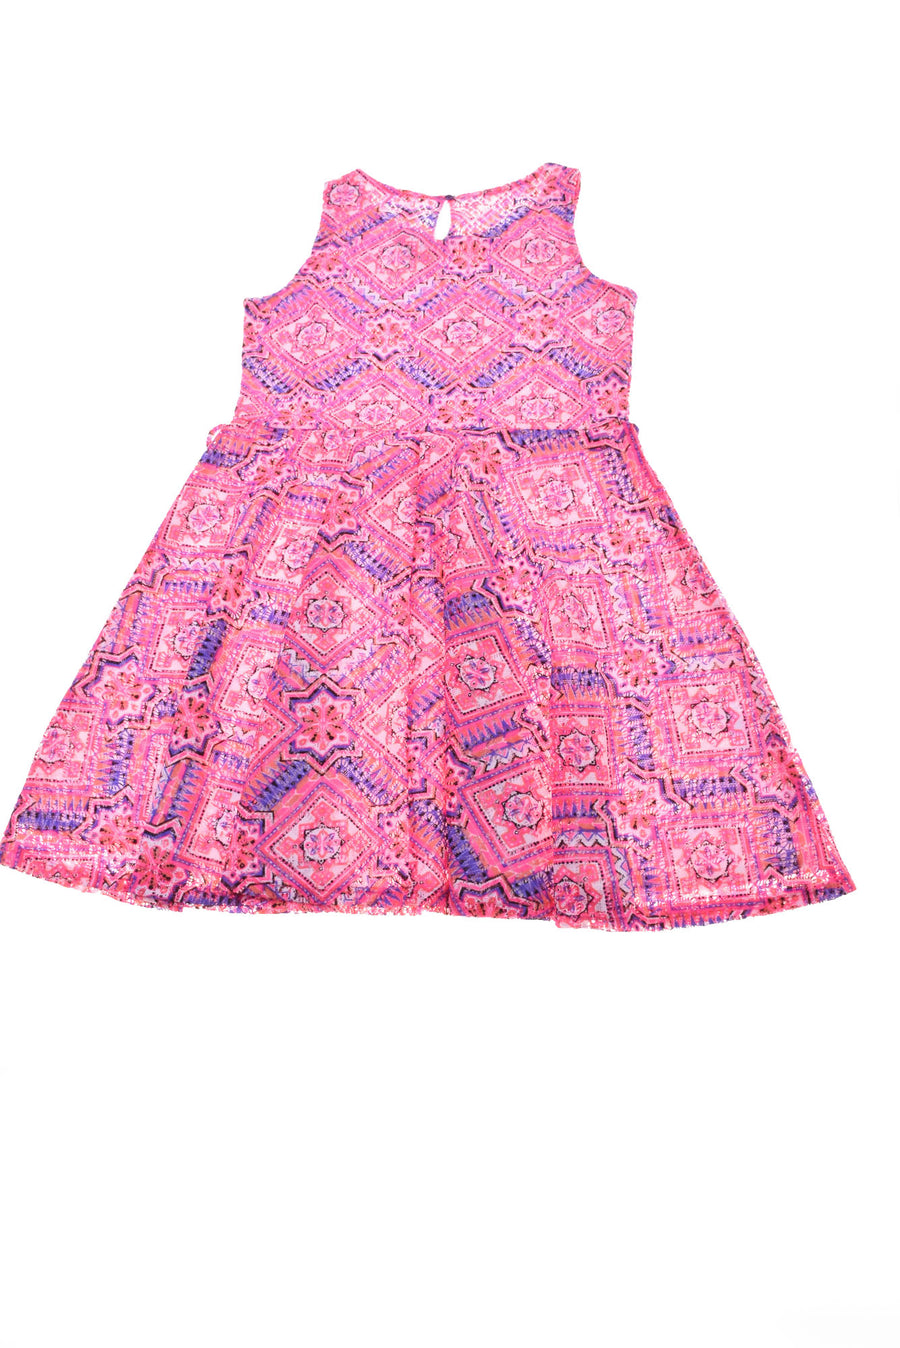 NEW Justice Girl's Dress 16 Pink